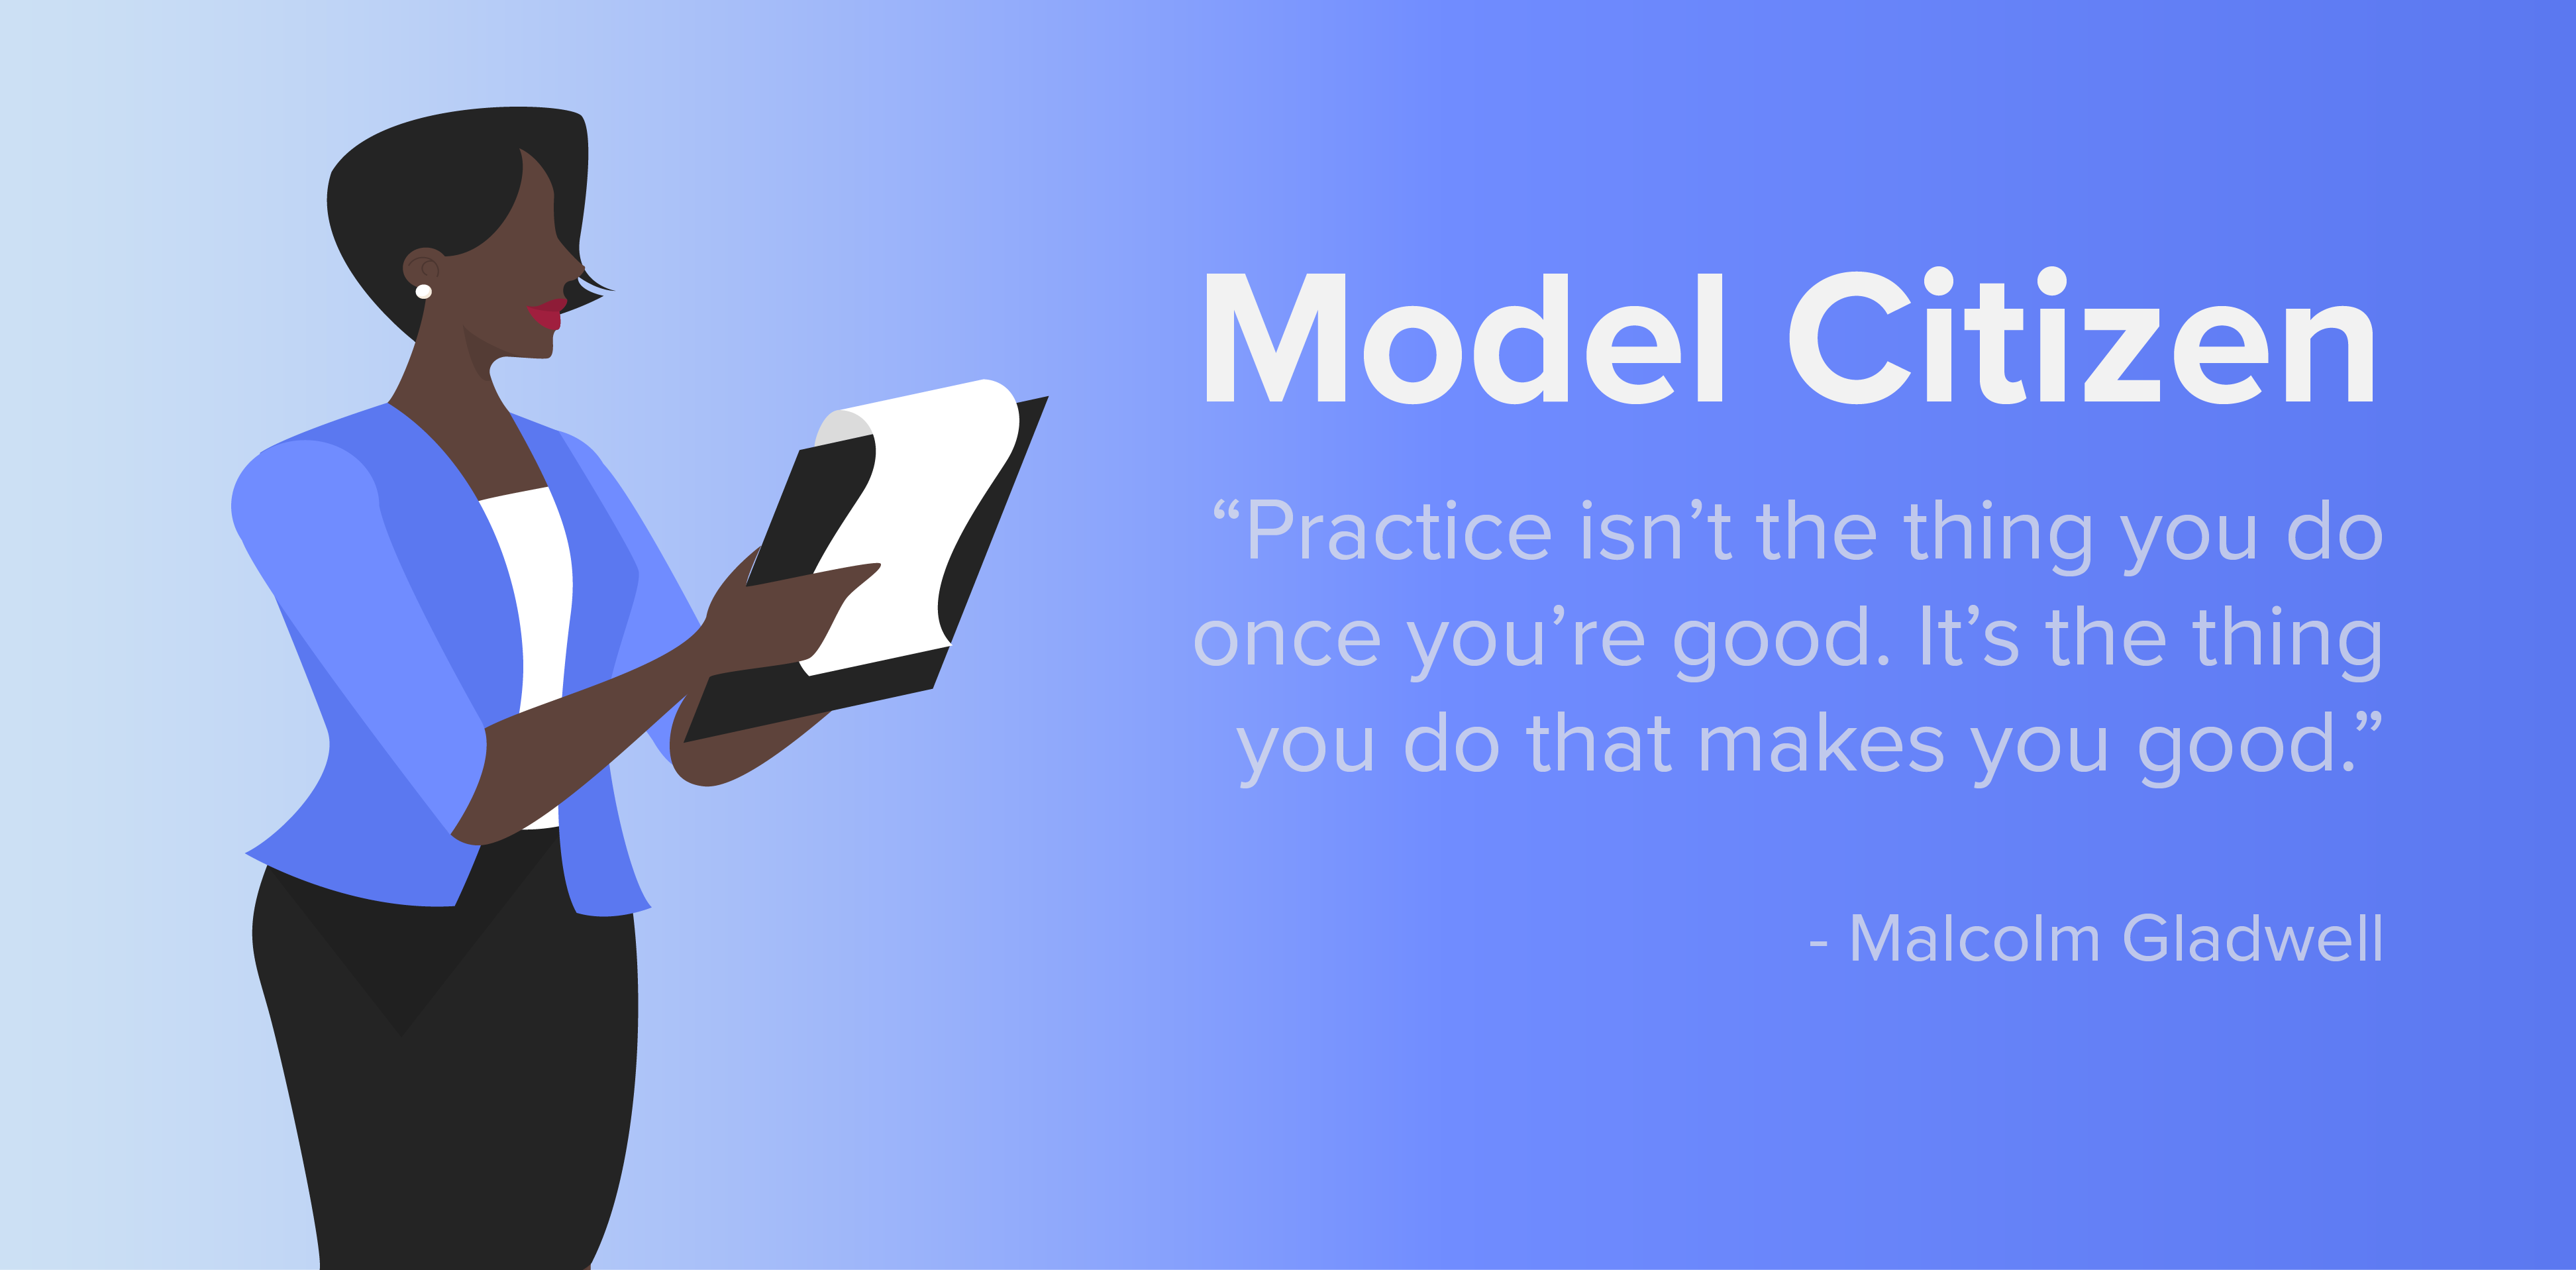 """Model Citizen. """"Practice isn't the thing you do once you're good. It's the thing you do that makes you good."""" -Malcolm Gladwell"""